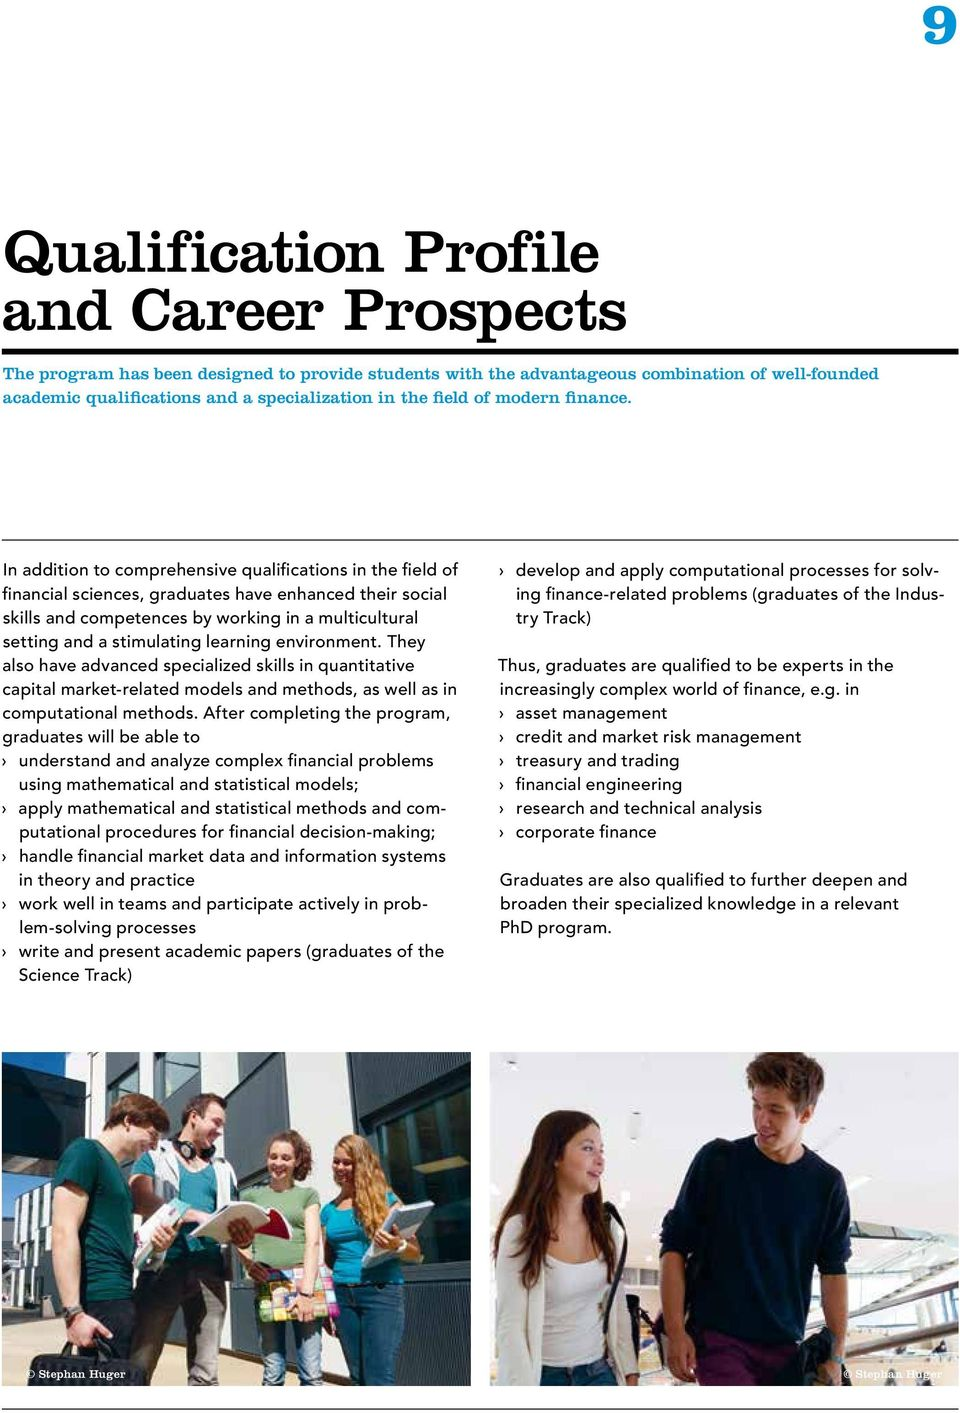 In addition to comprehensive qualifications in the field of financial sciences, graduates have enhanced their social skills and competences by working in a multicultural setting and a stimulating